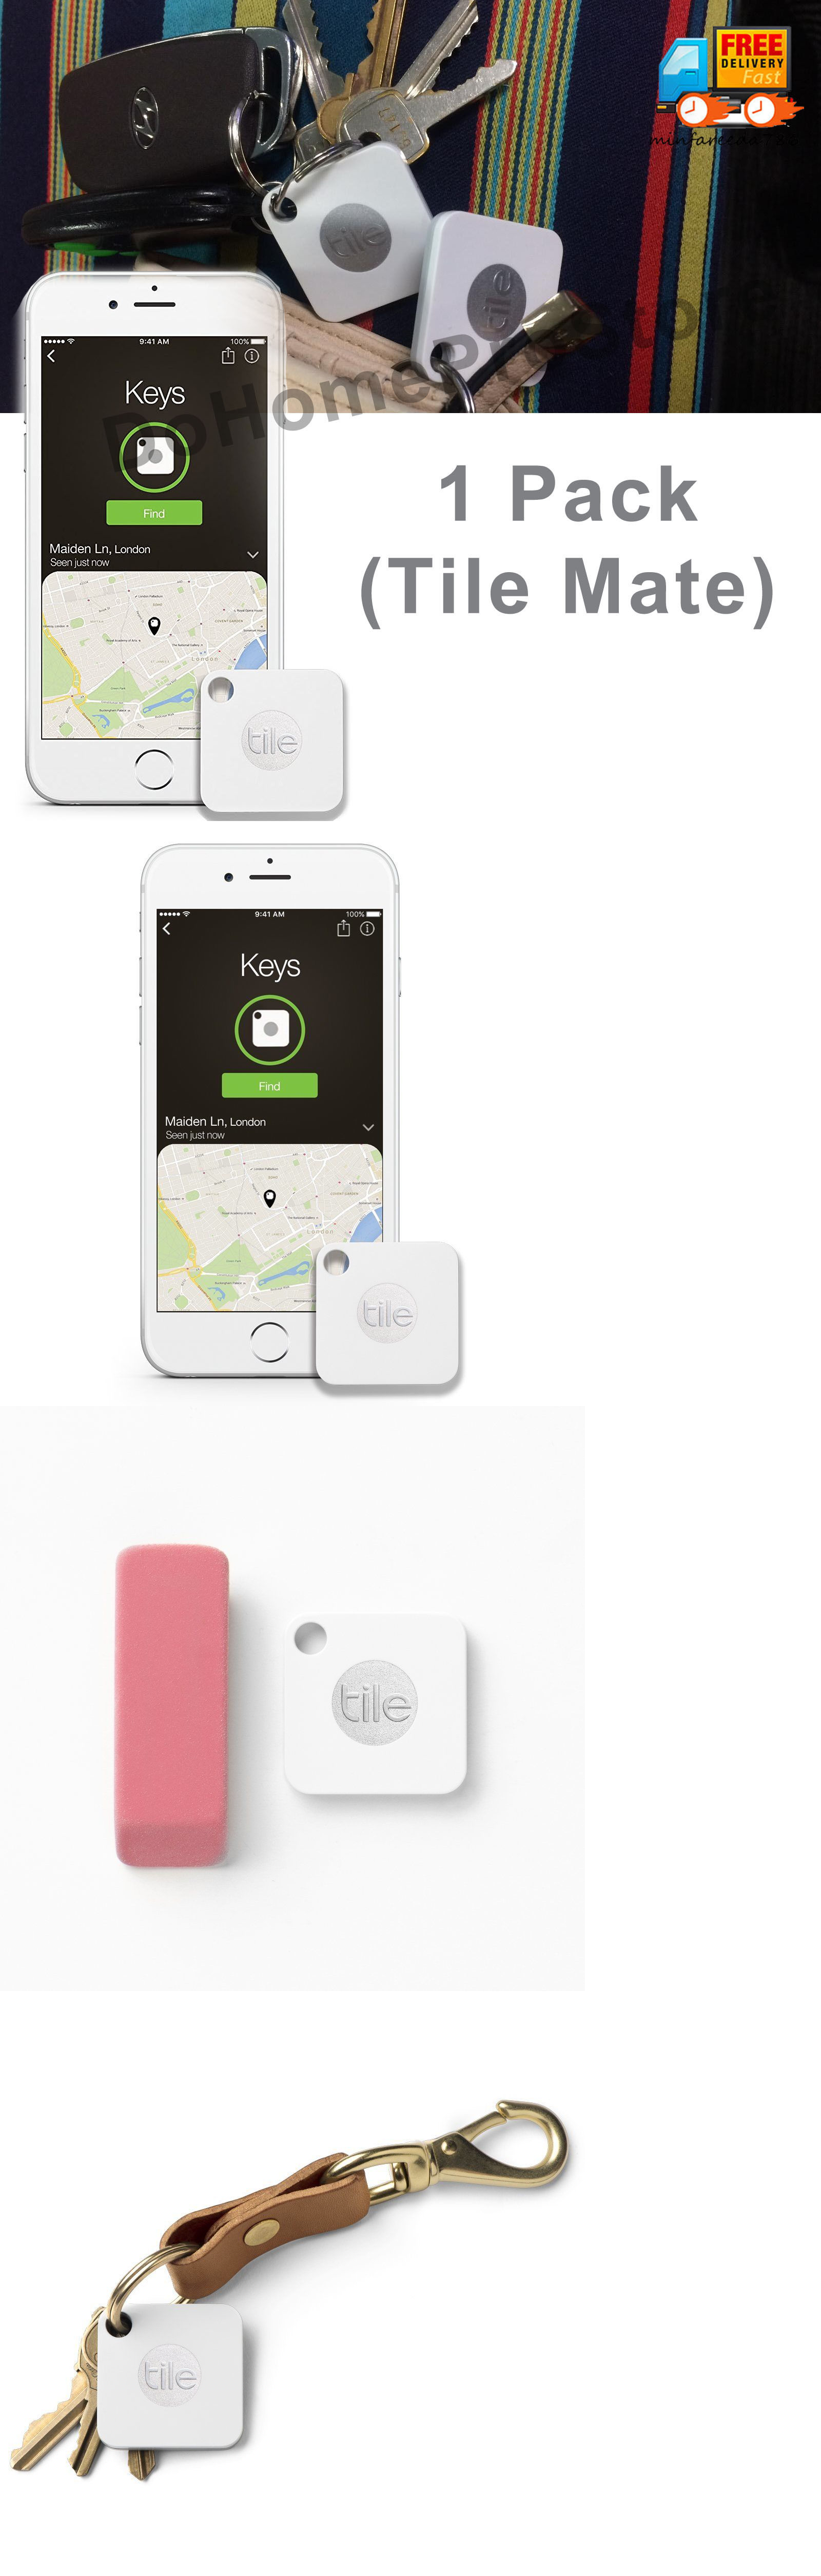 tracking devices tile mate key finder bluetooth phone tracker find anything ring locator 1